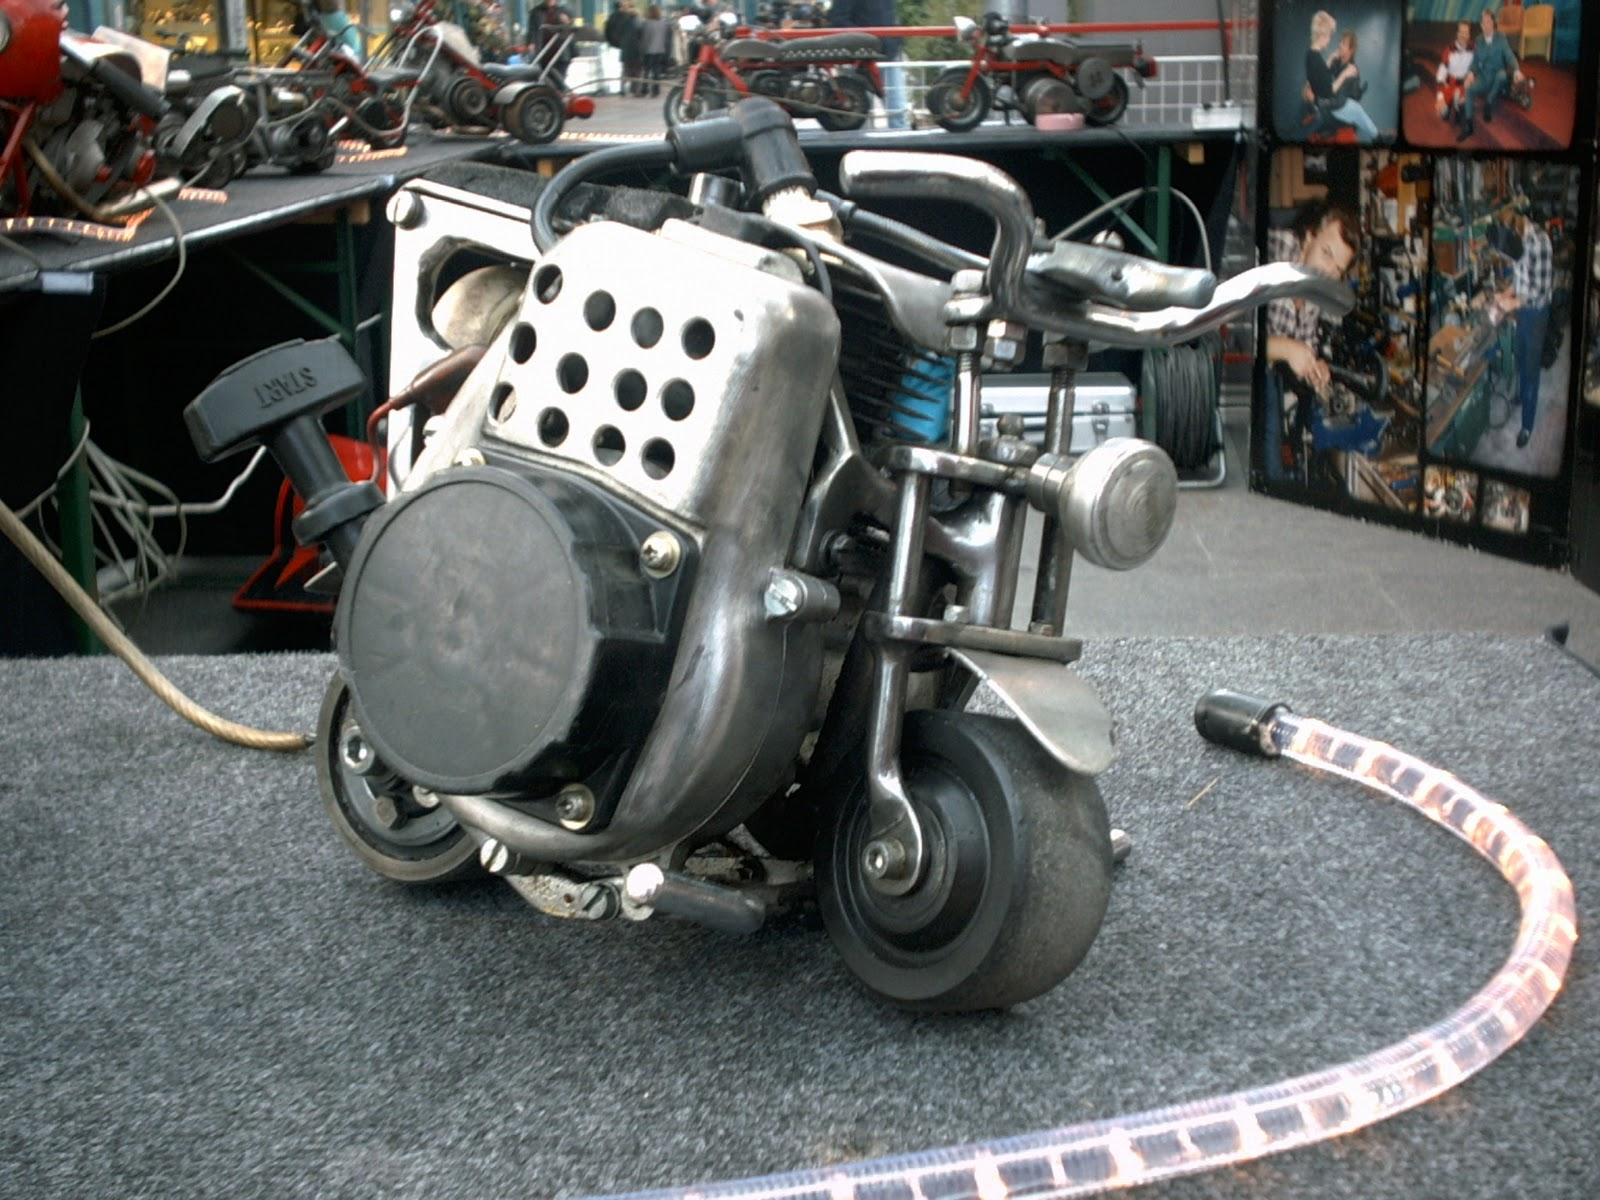 MOTORCYCLE 74: Micro Motorcycles